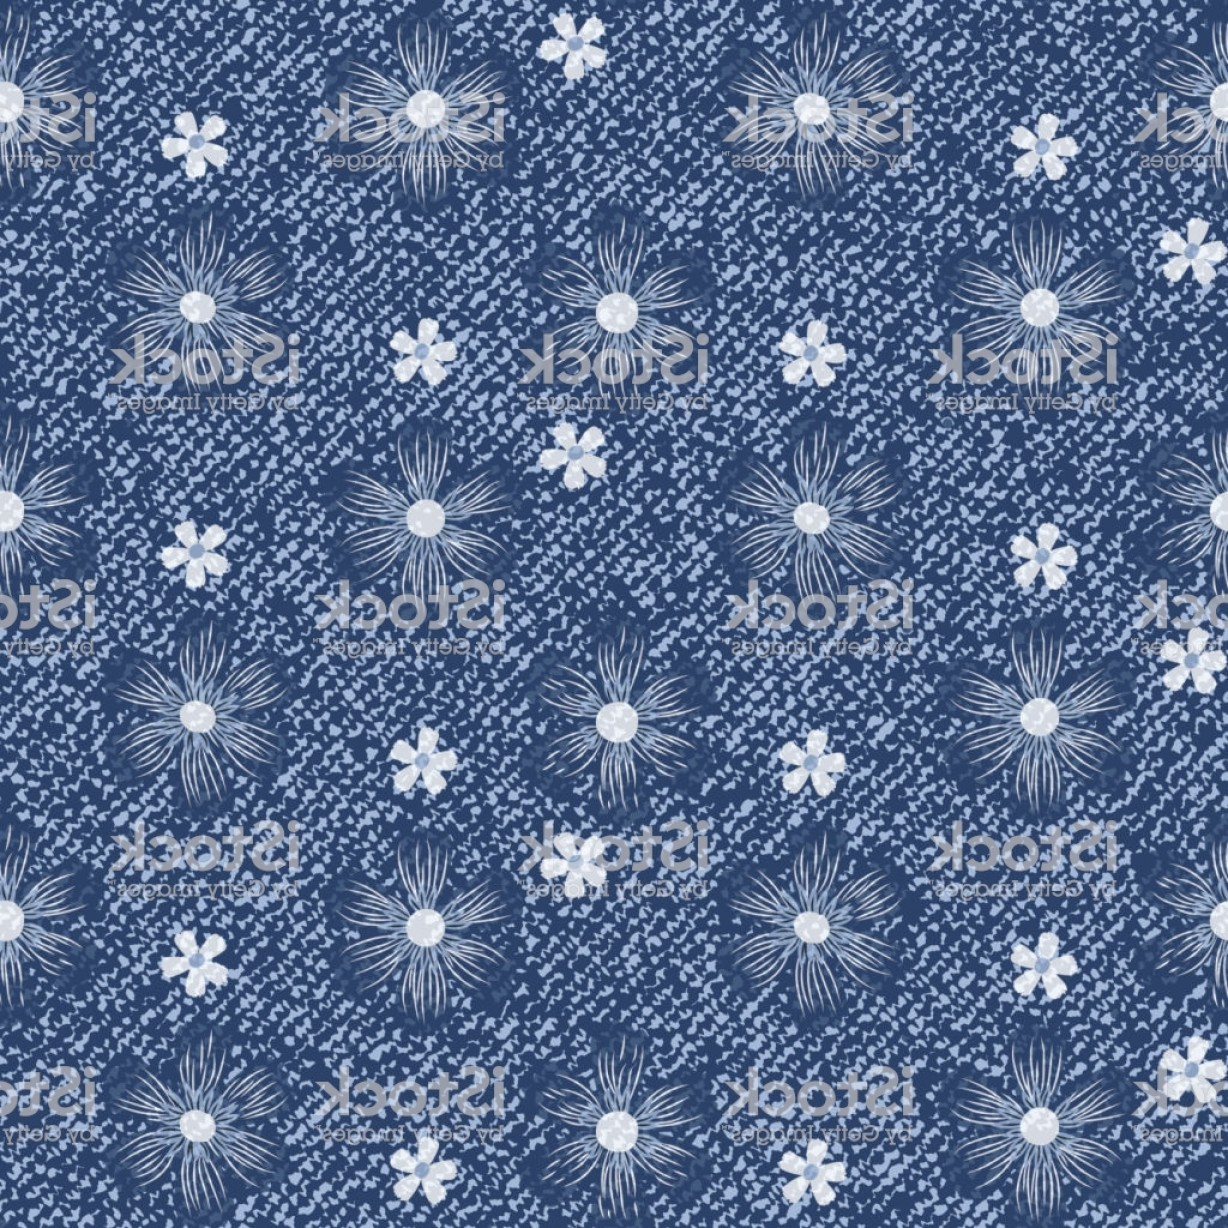 Denim And Pearls Vector: Vector Blue Jeans Background With Flowers Daisies Seamless Pattern Denim Floral Gm